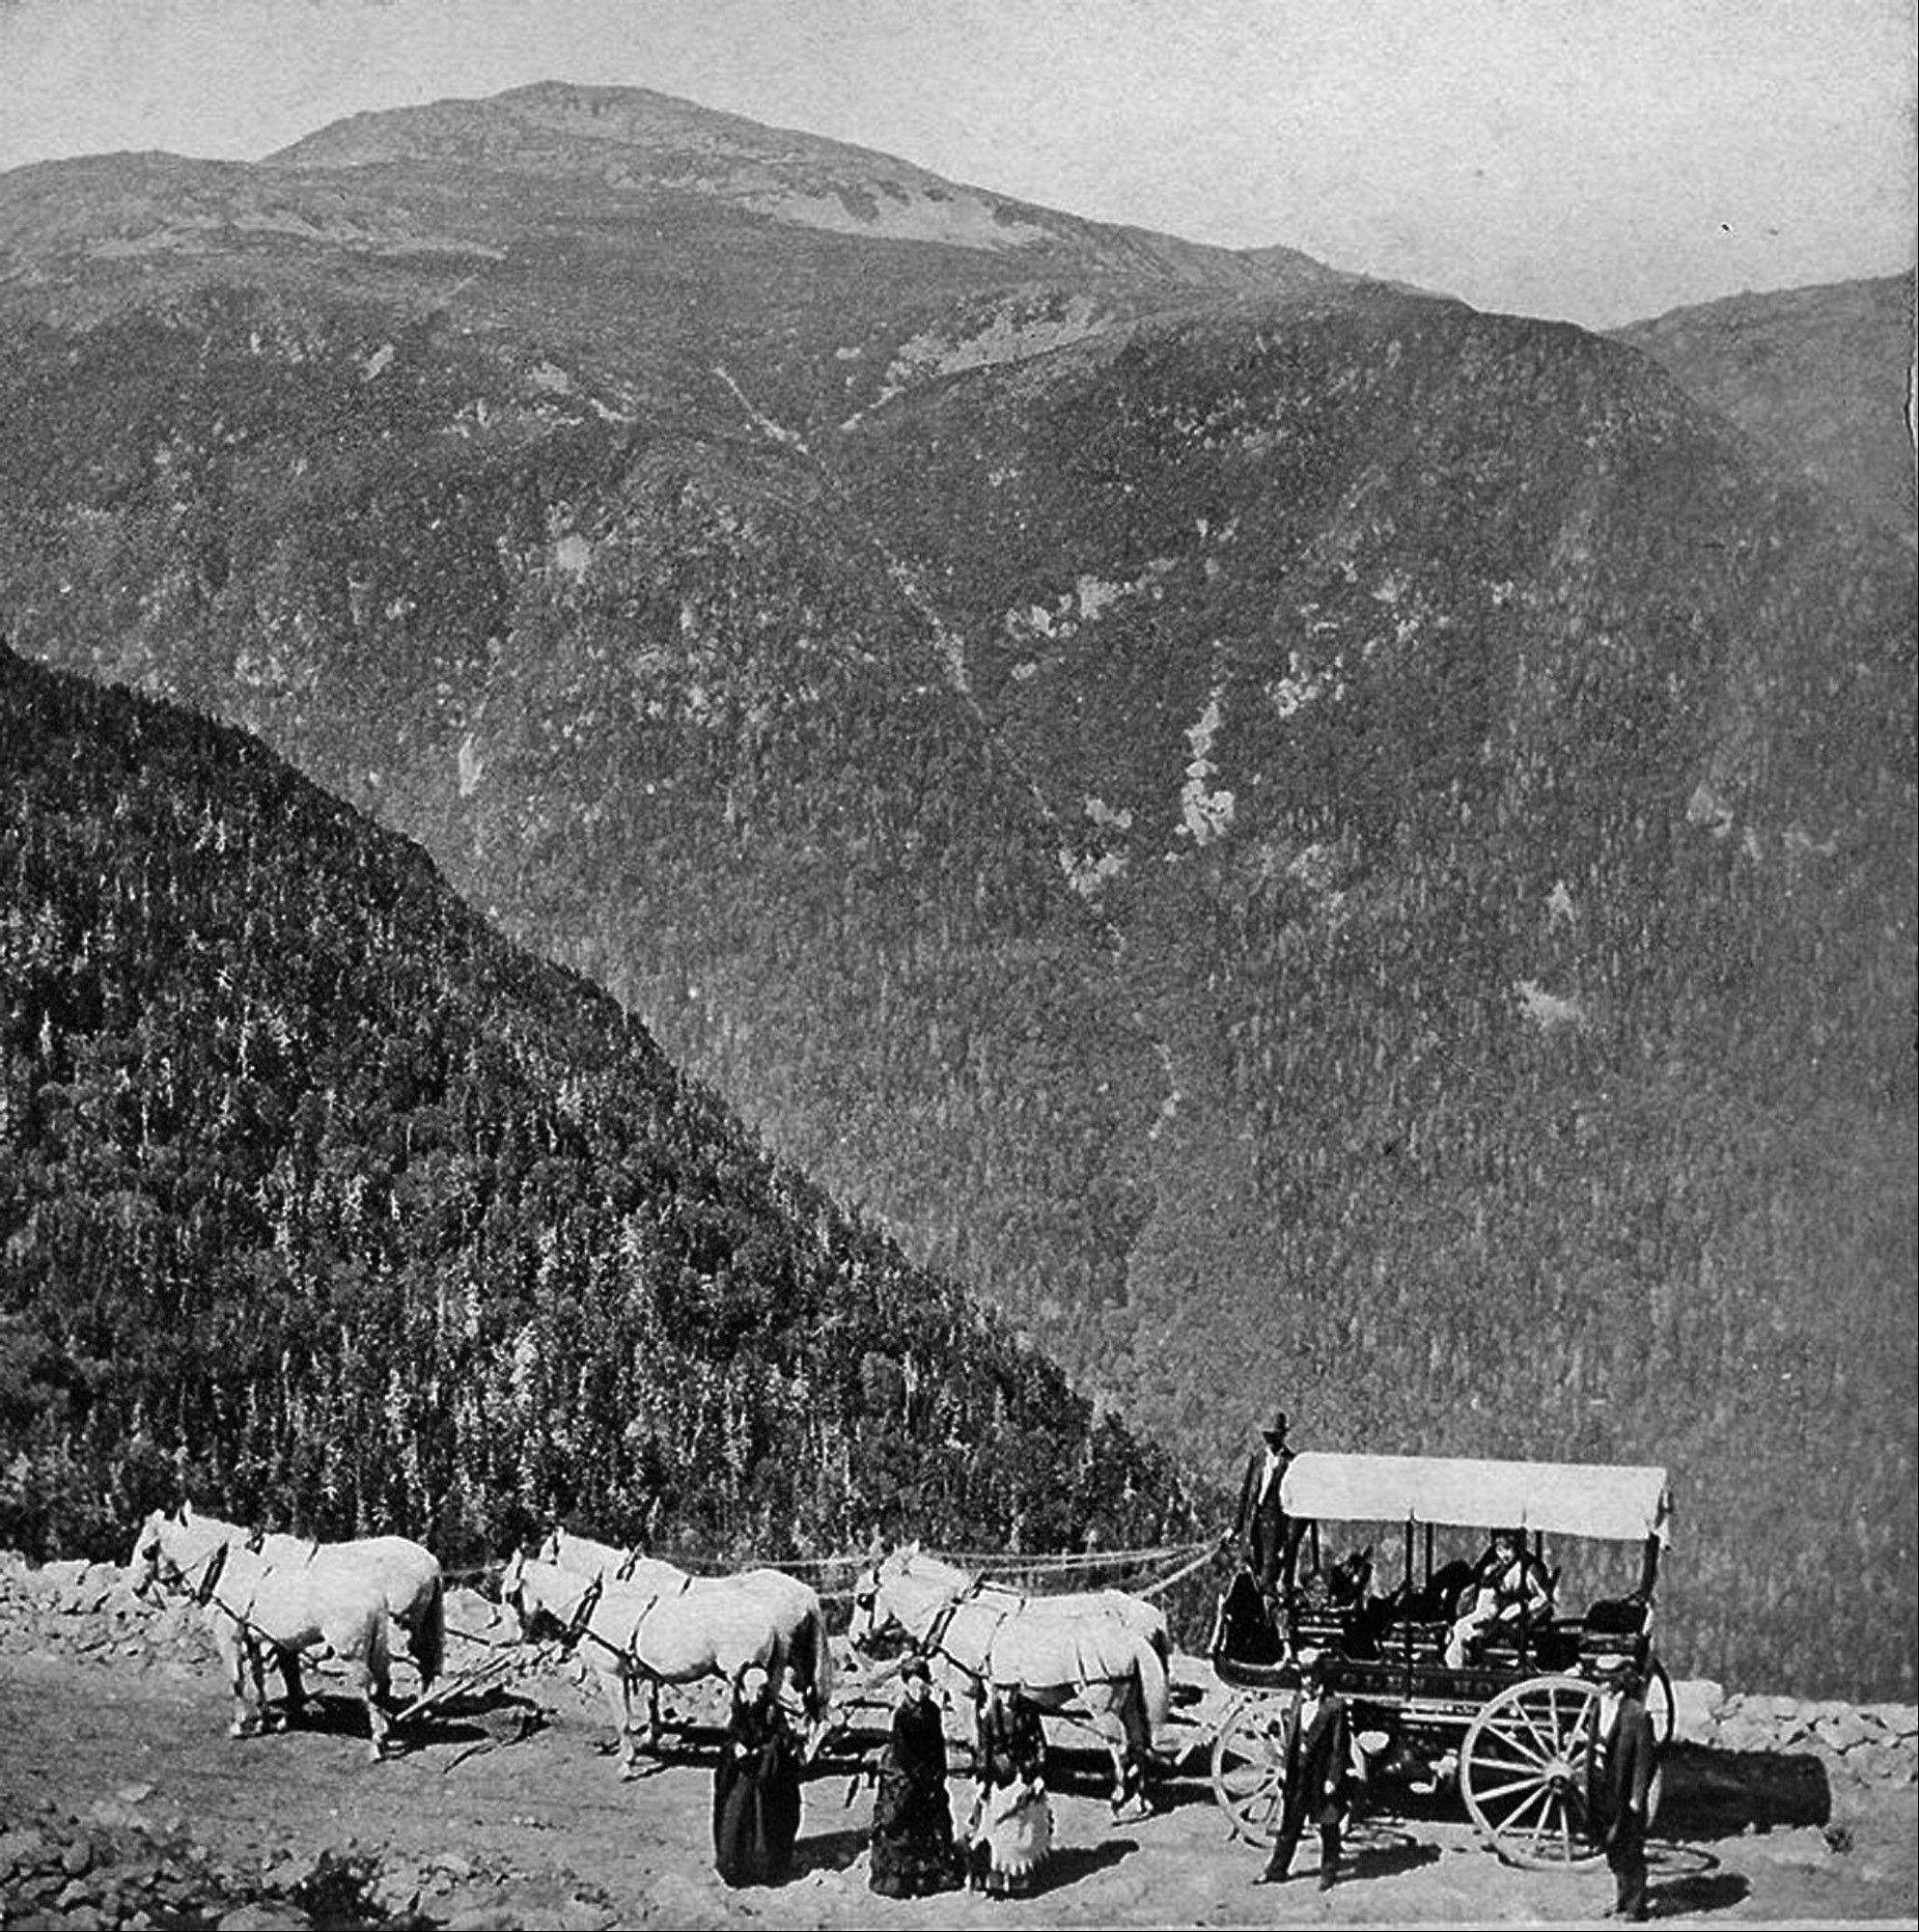 A horse-drawn carriage stops for a break along the Mount Washington Auto Road in New Hampshire.